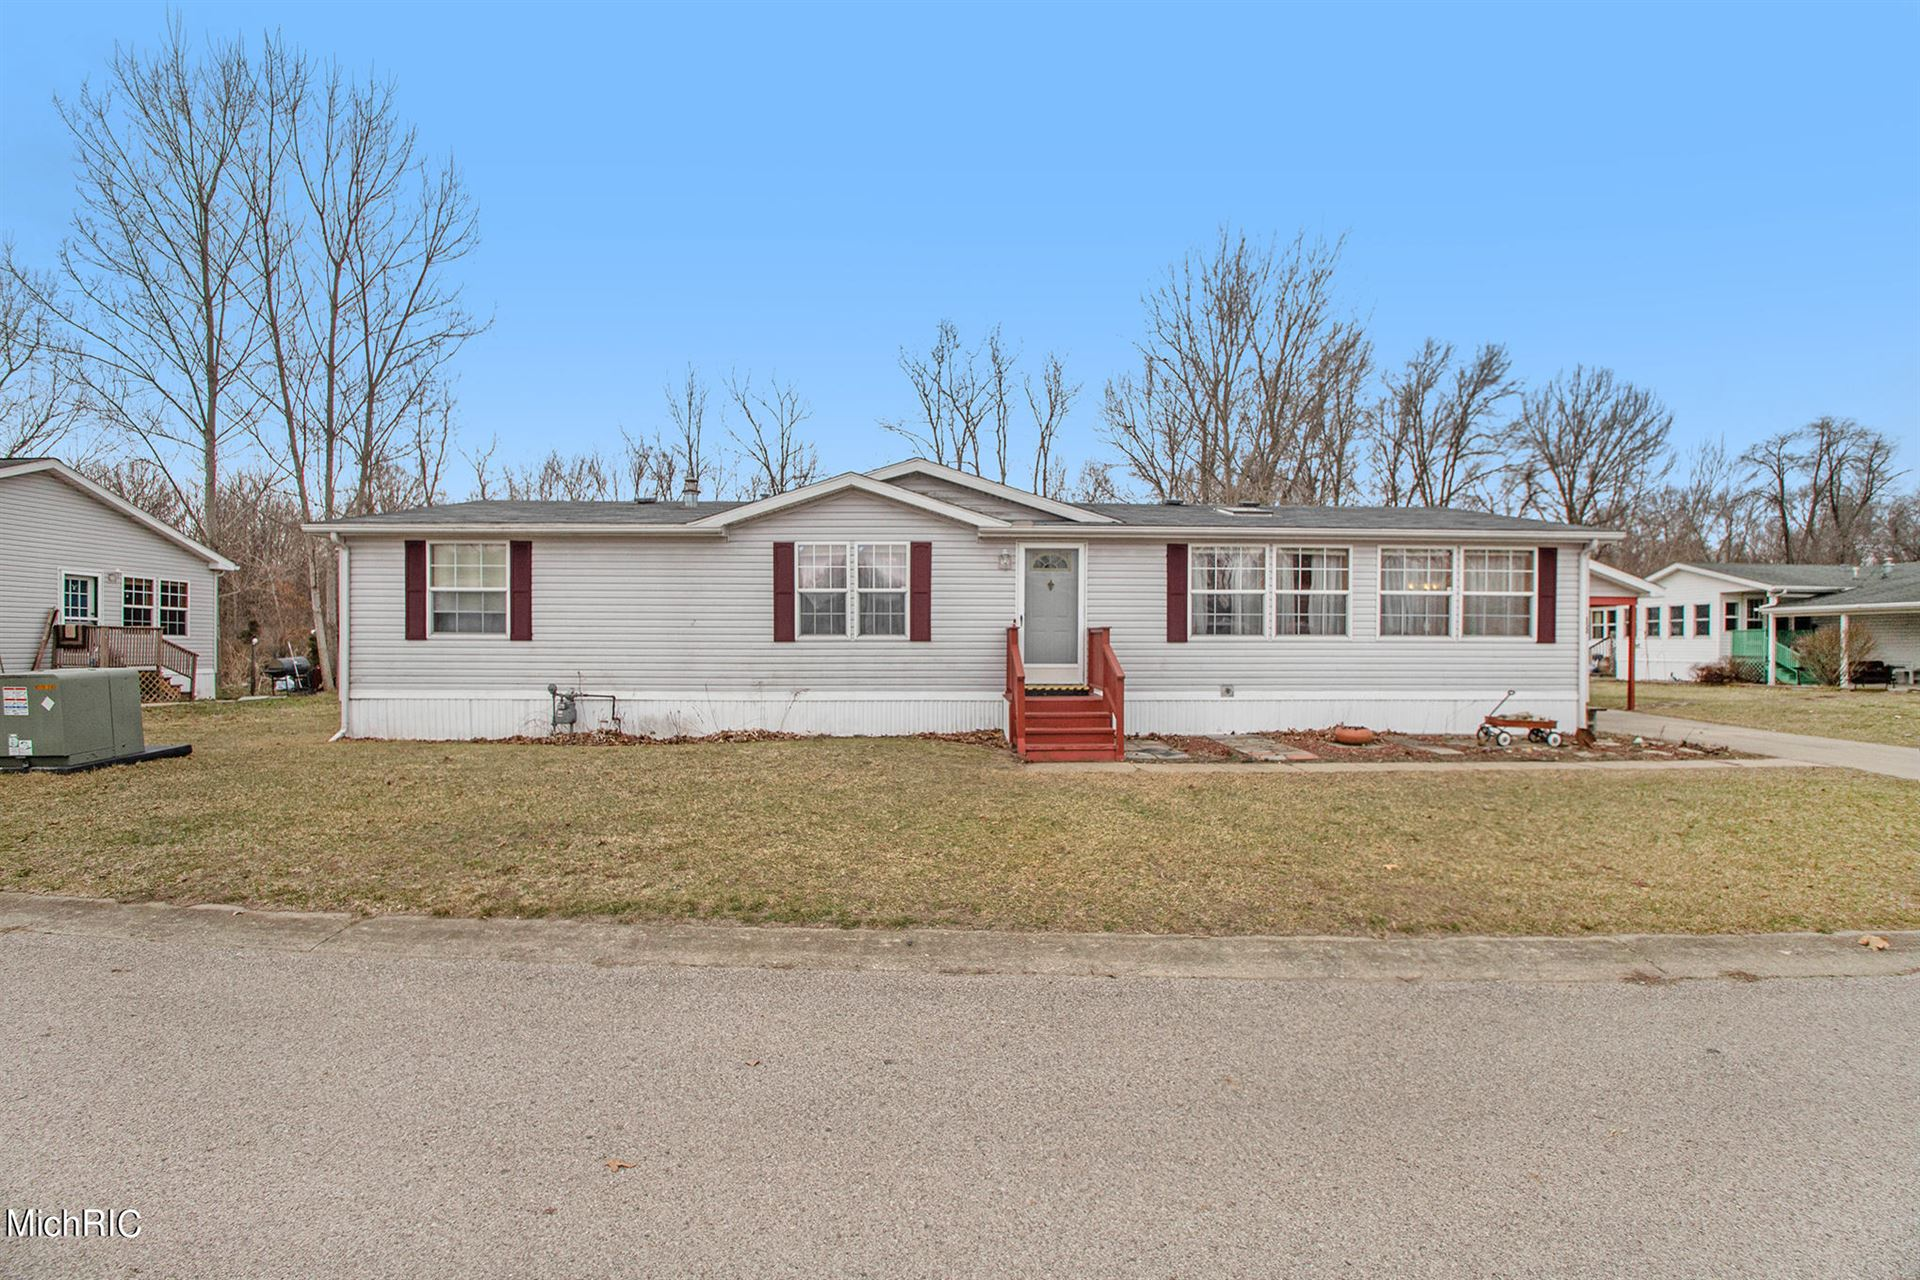 2006 Ontario Road #152, Niles, MI 49120 - MLS#: 21008132